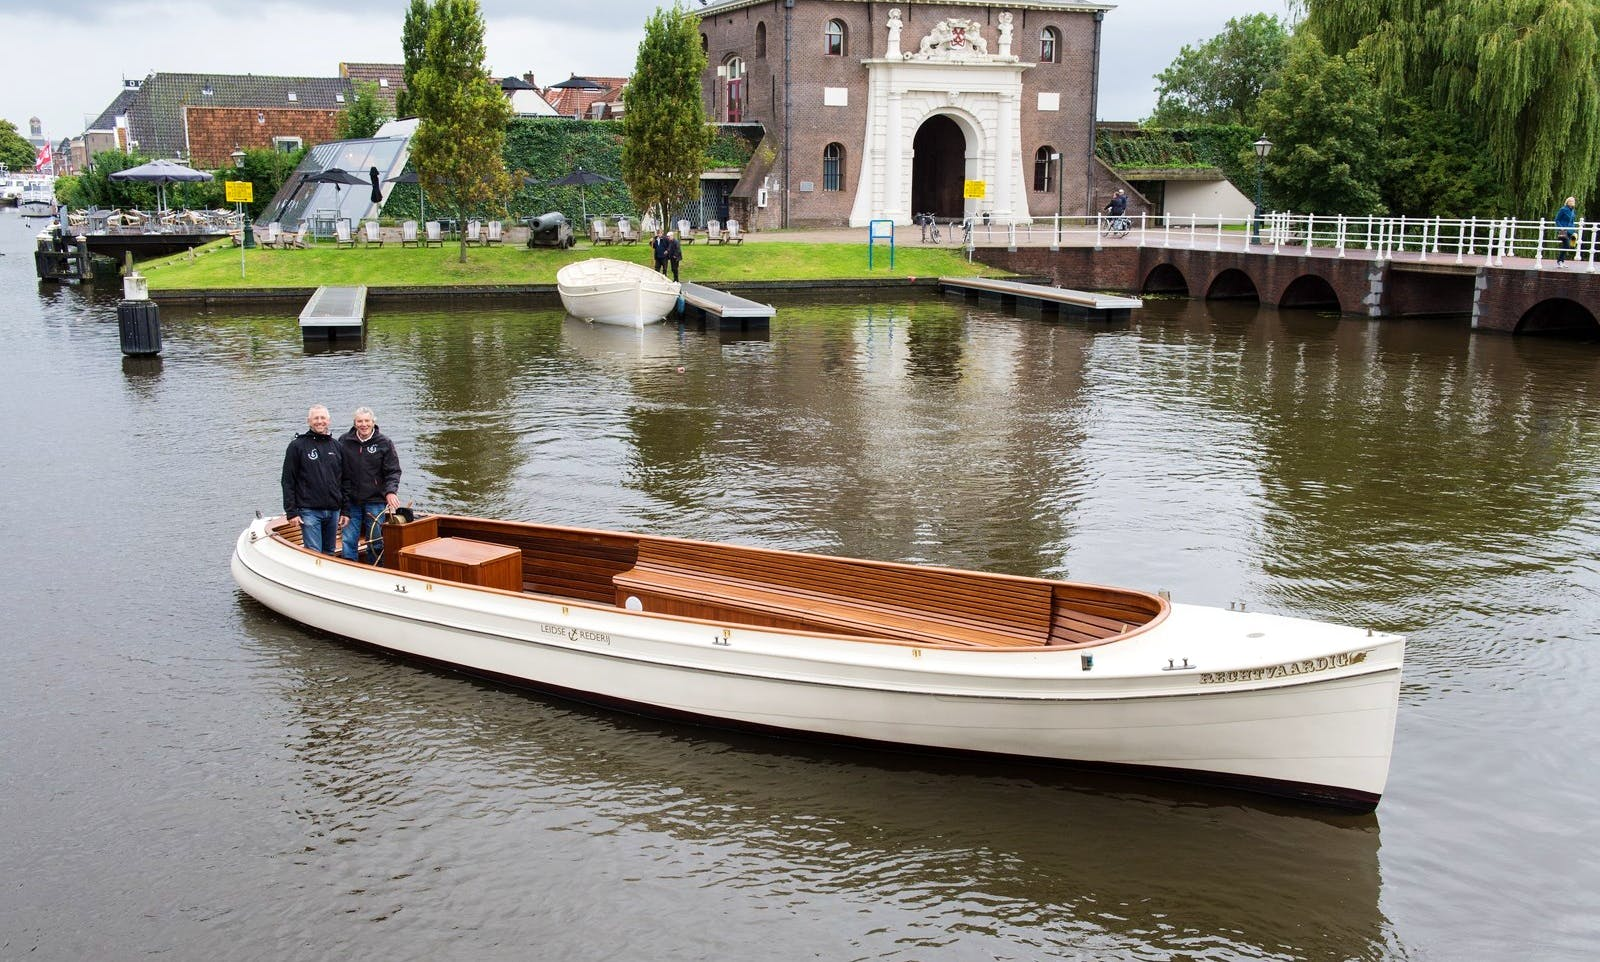 Classic Luxurios Bride Boat for up to 12 Person in Leiden, the Netherlands